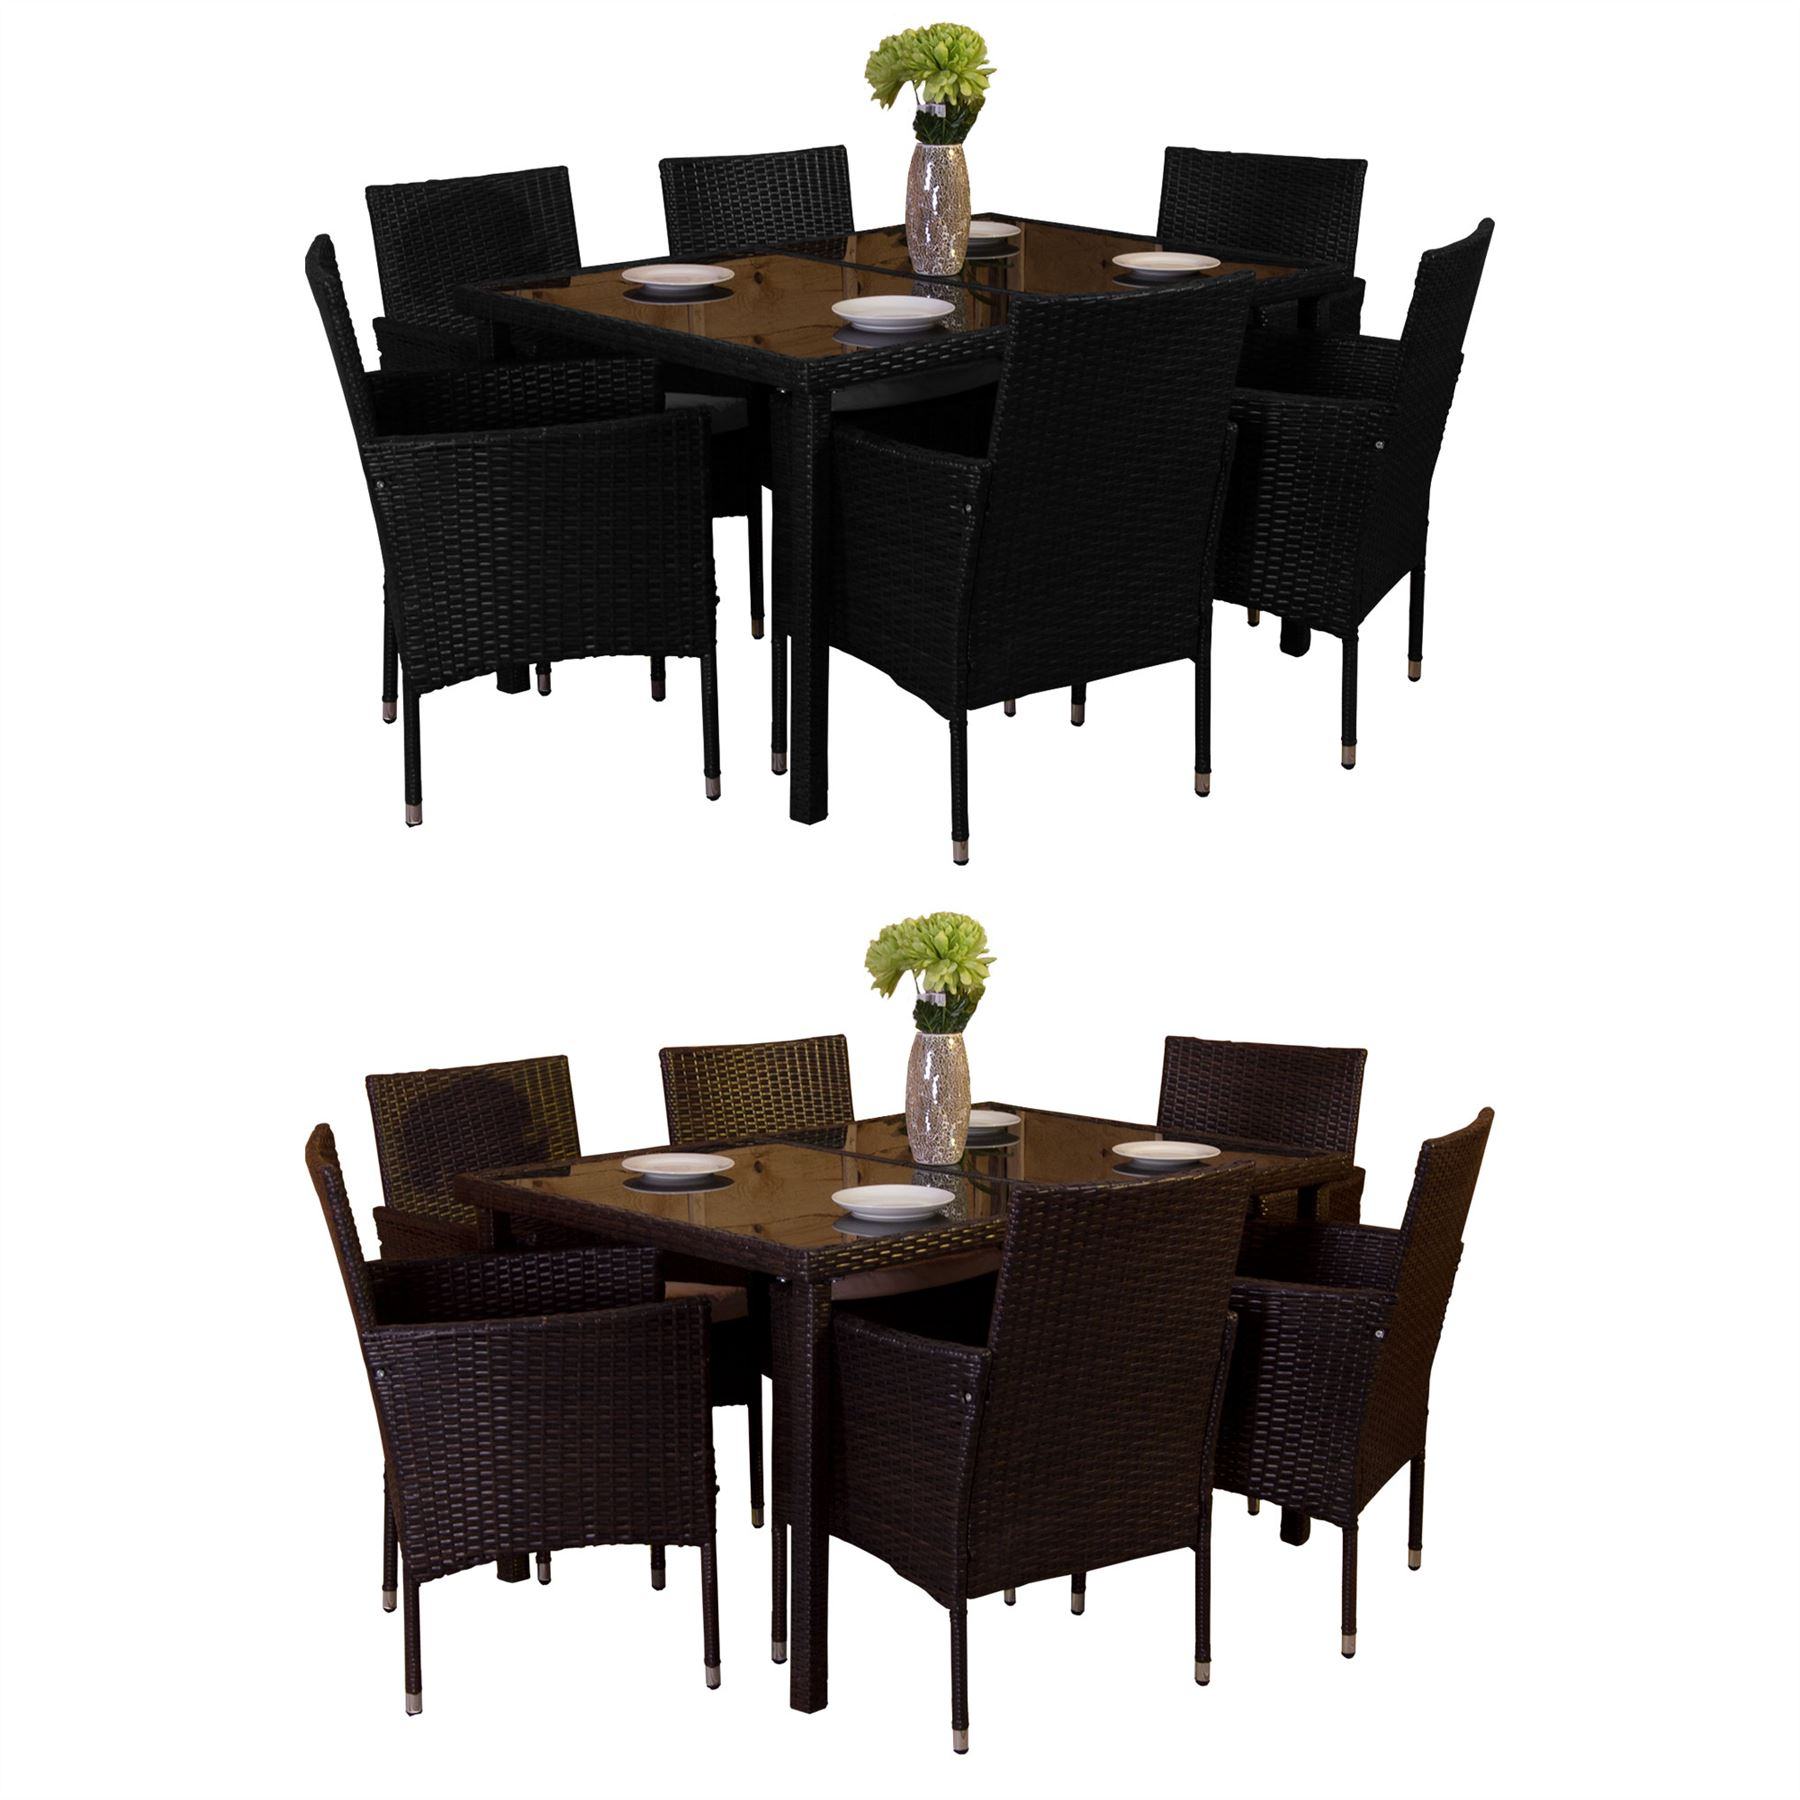 Details about malpas garden rattan furniture 6 seater dining set outdoor table patio ukfr